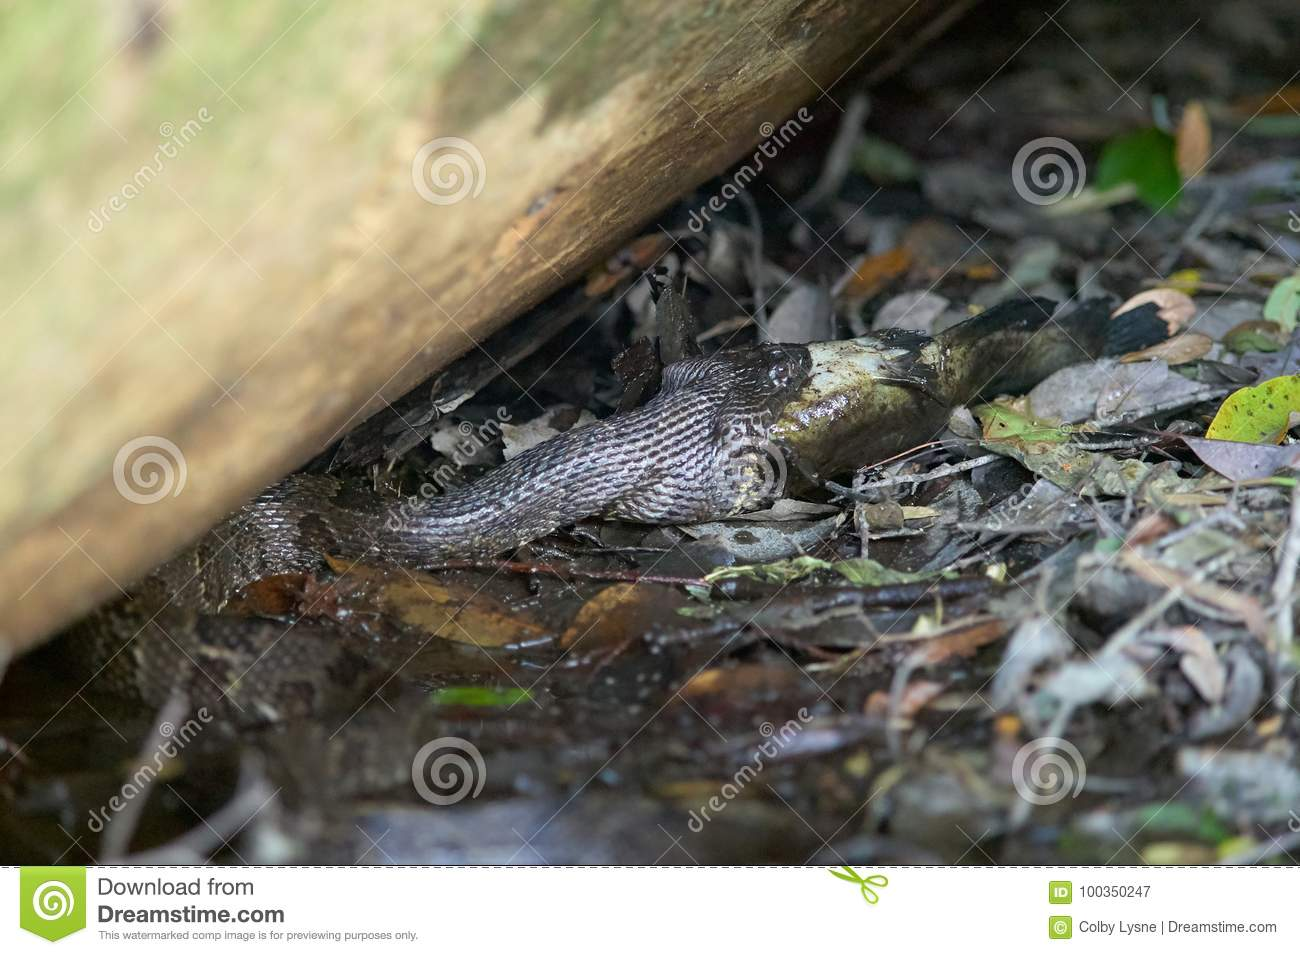 Water Moccasin Snake Catching Fish In Swamp Stock Image Image Of